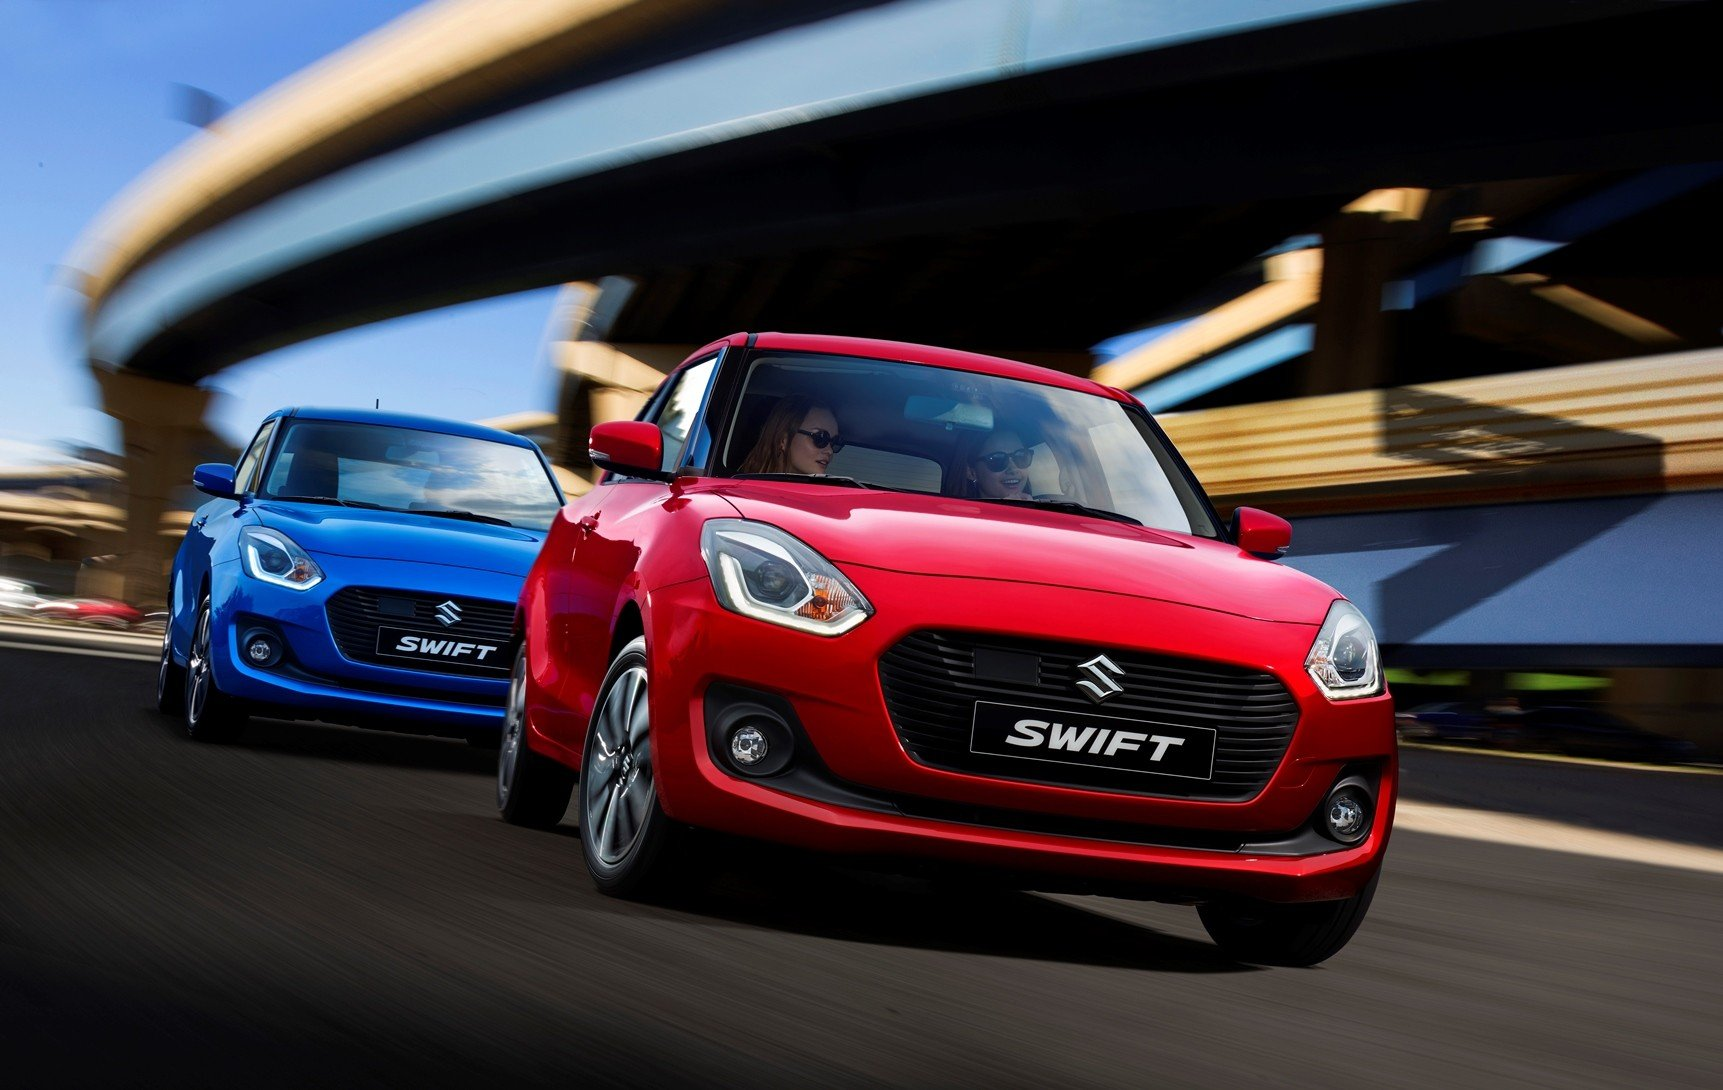 New Suzuki Swift1_master.jpg